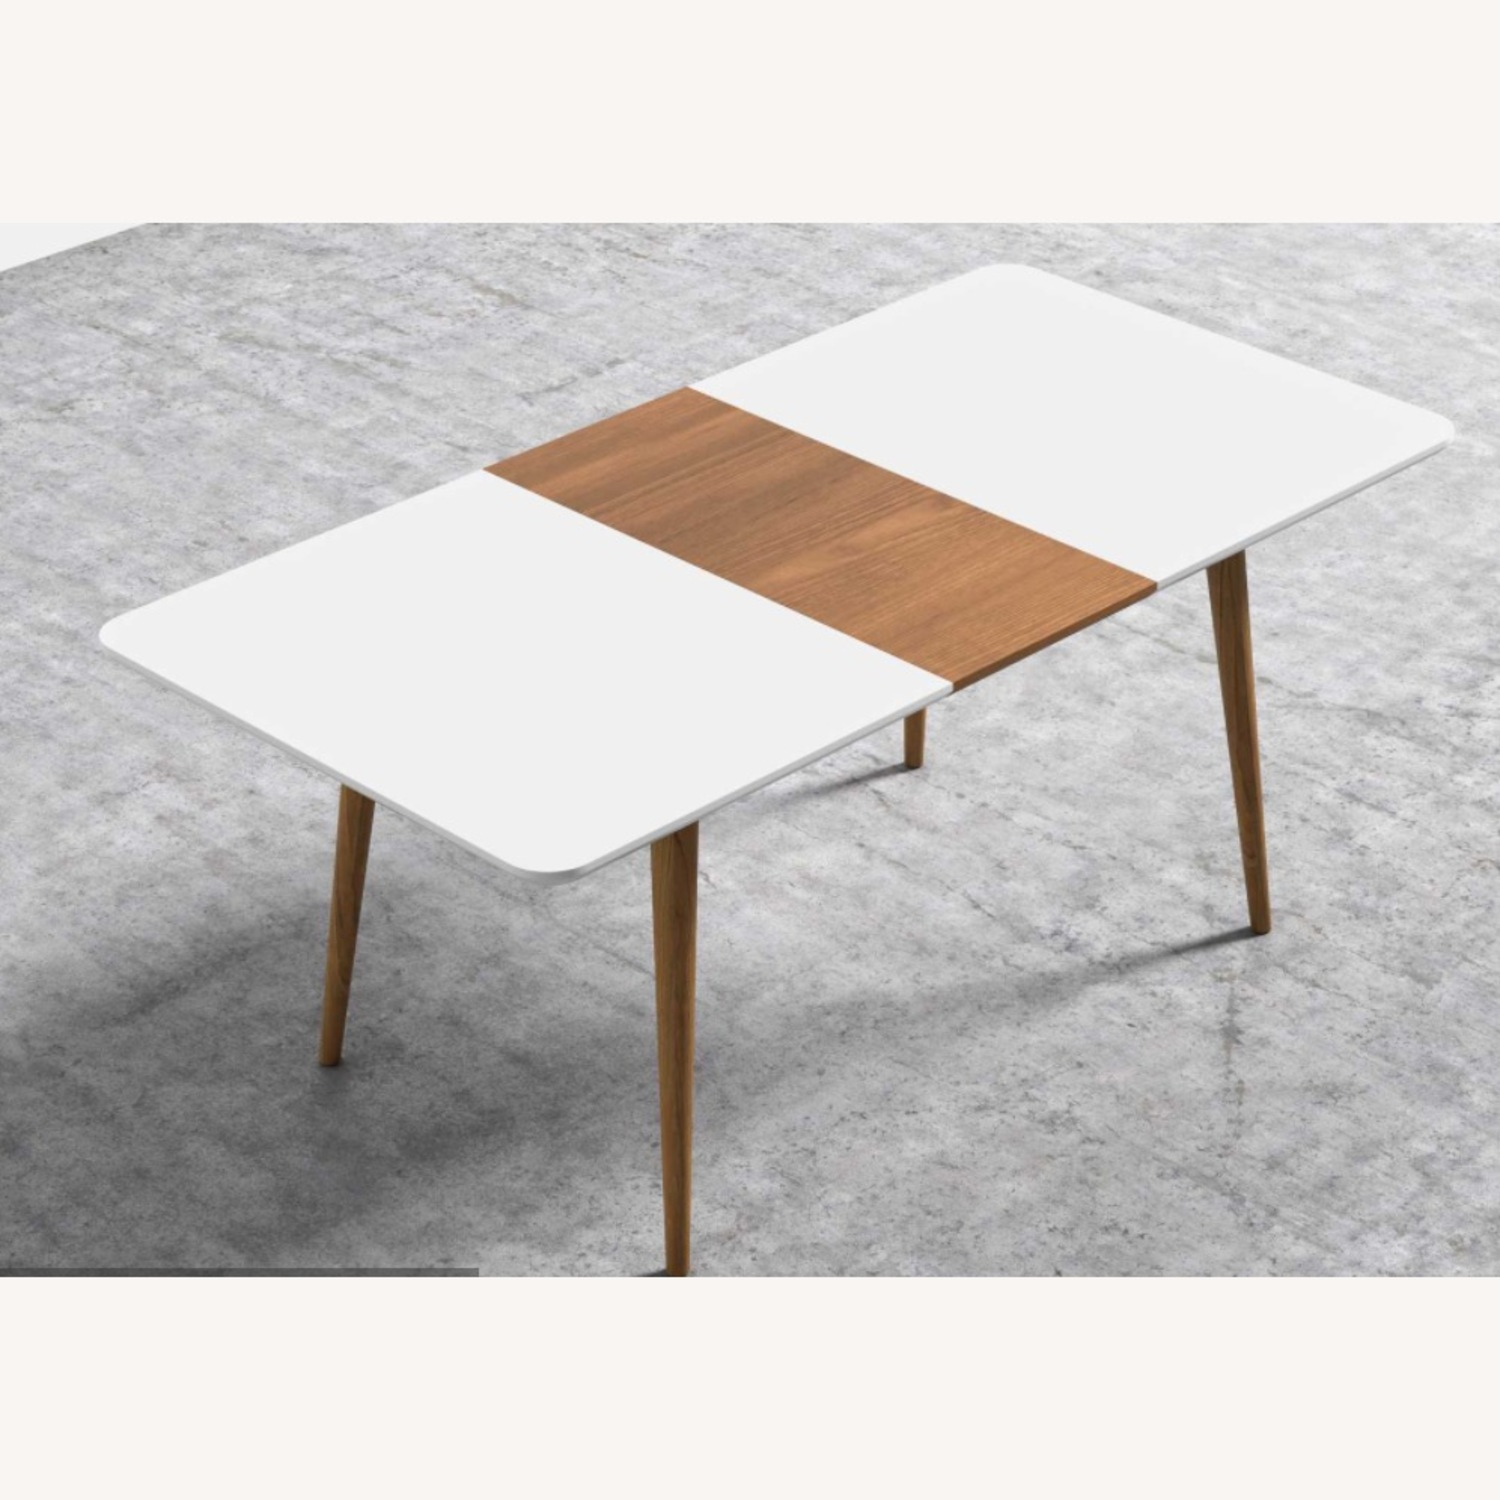 Rove Concepts White with Wood Dining Table - image-1